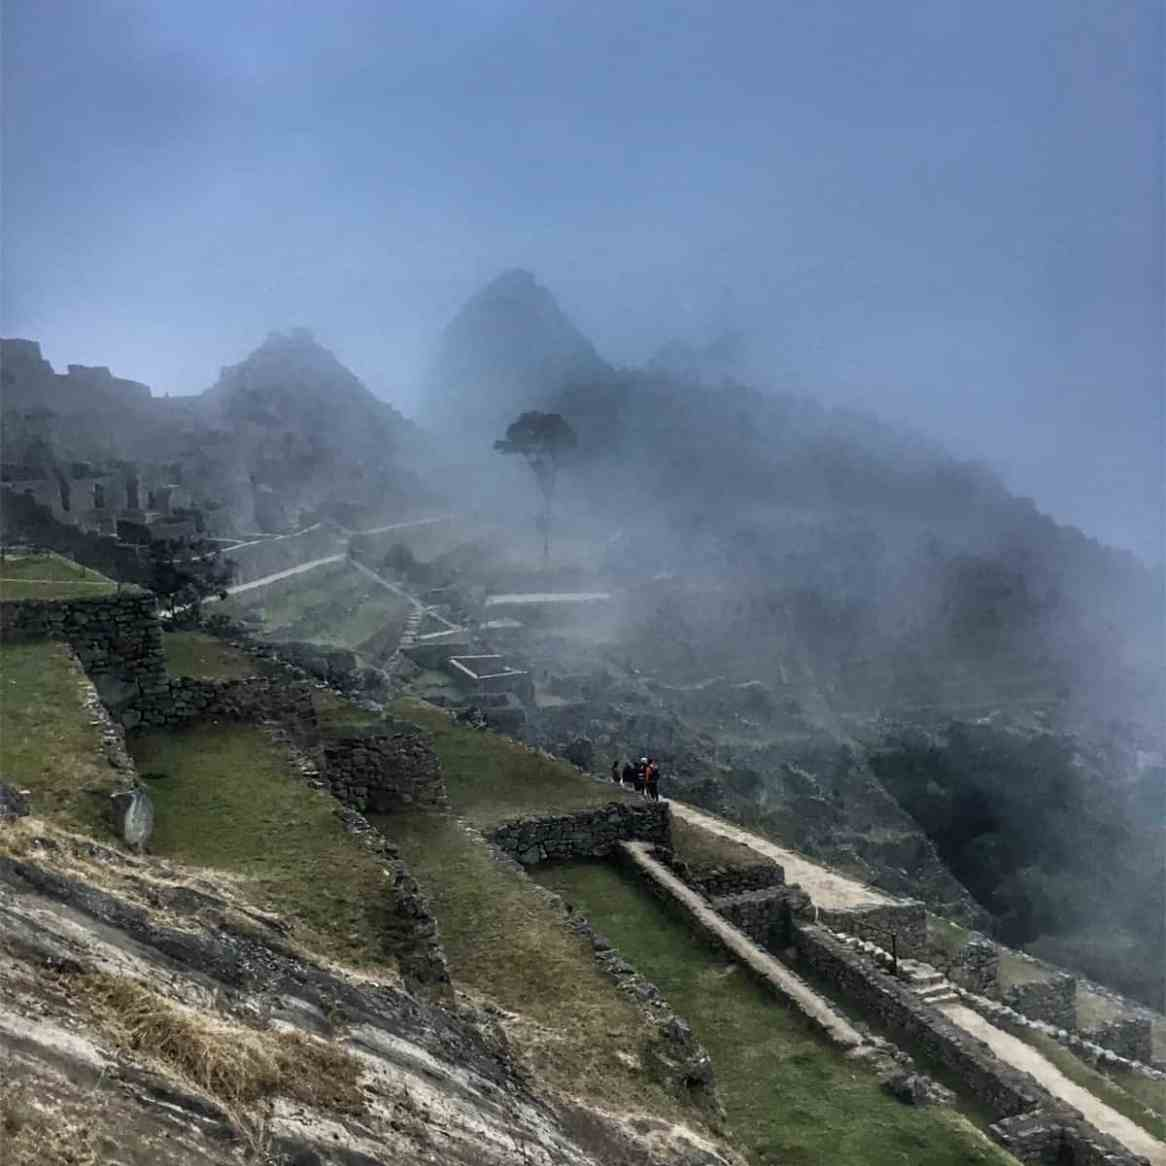 machu picchu buildings with fog